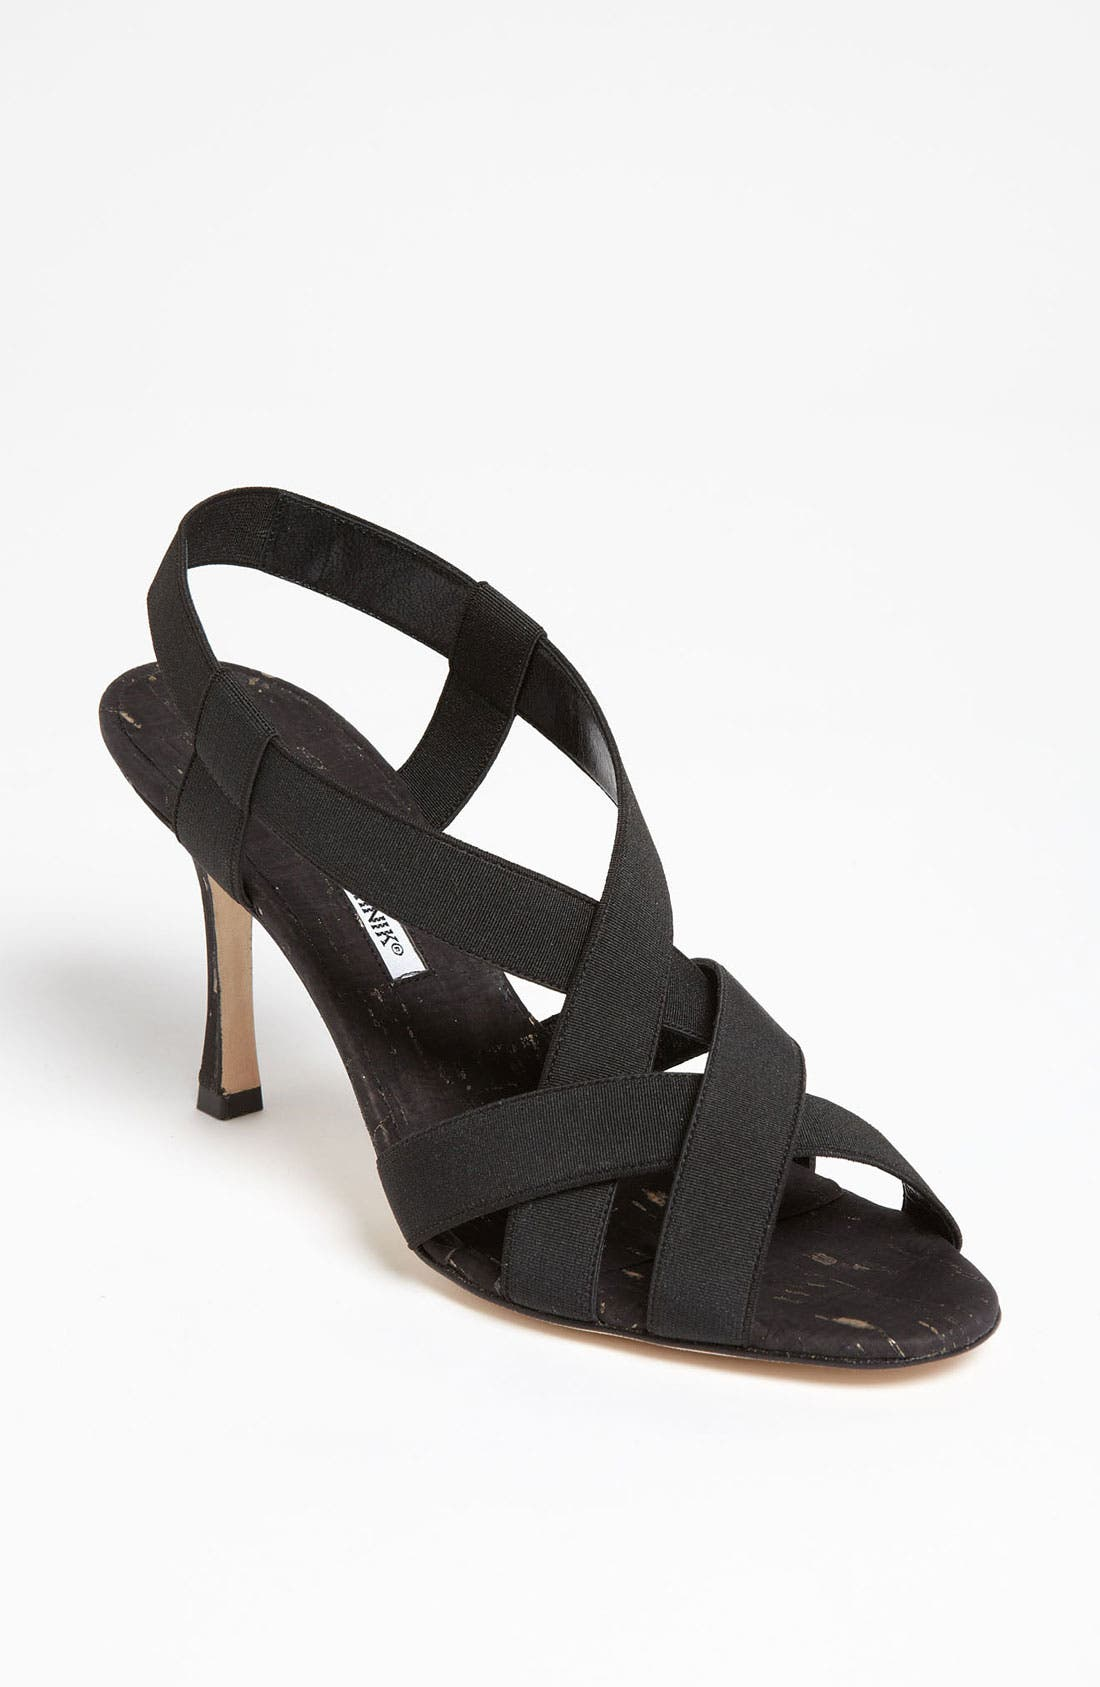 Alternate Image 1 Selected - Manolo Blahnik 'Lasti' Sandal